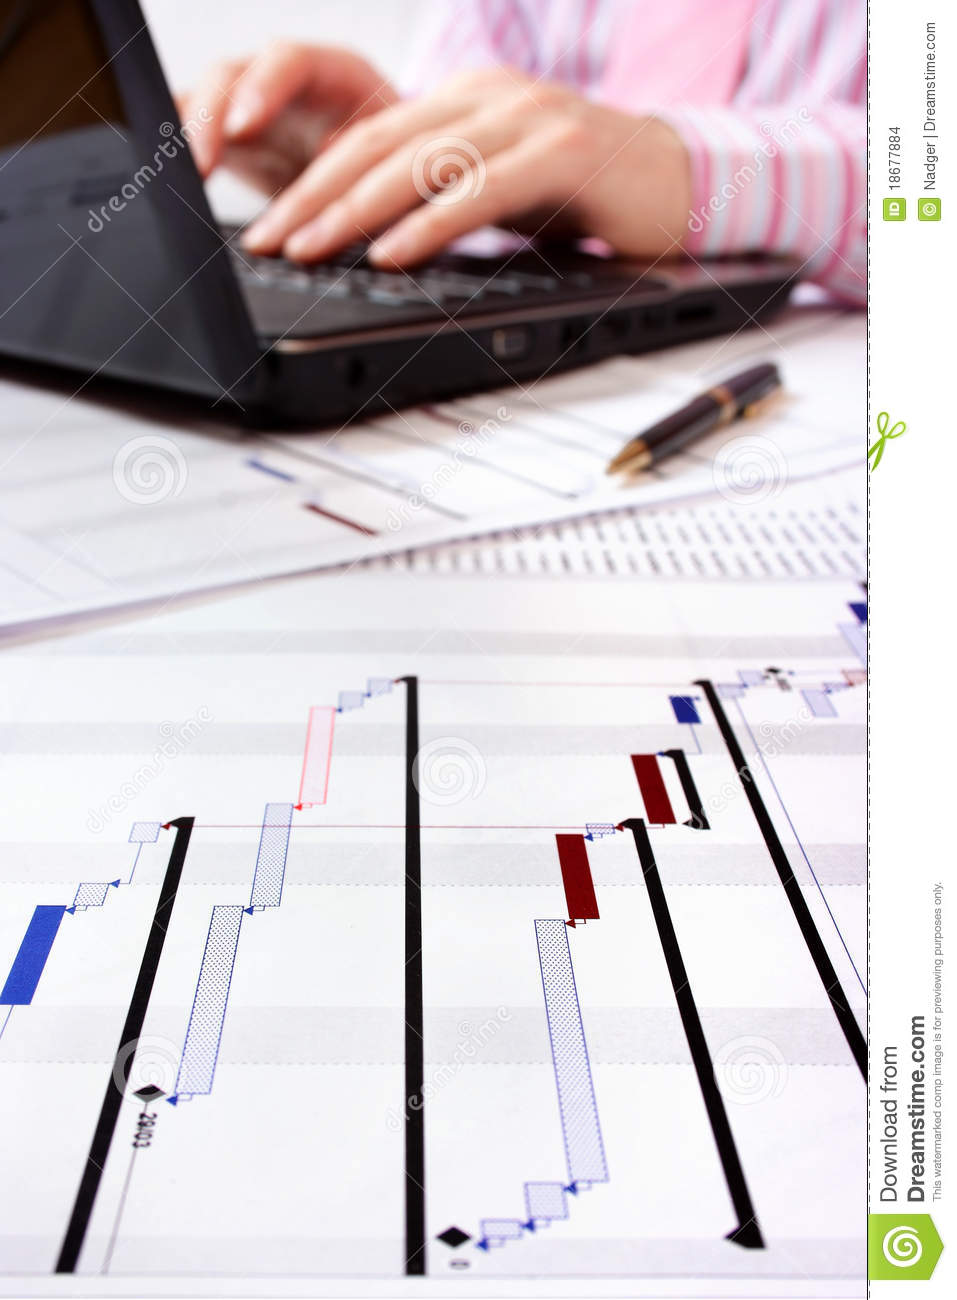 project gantt chart with laptop in background stock photo